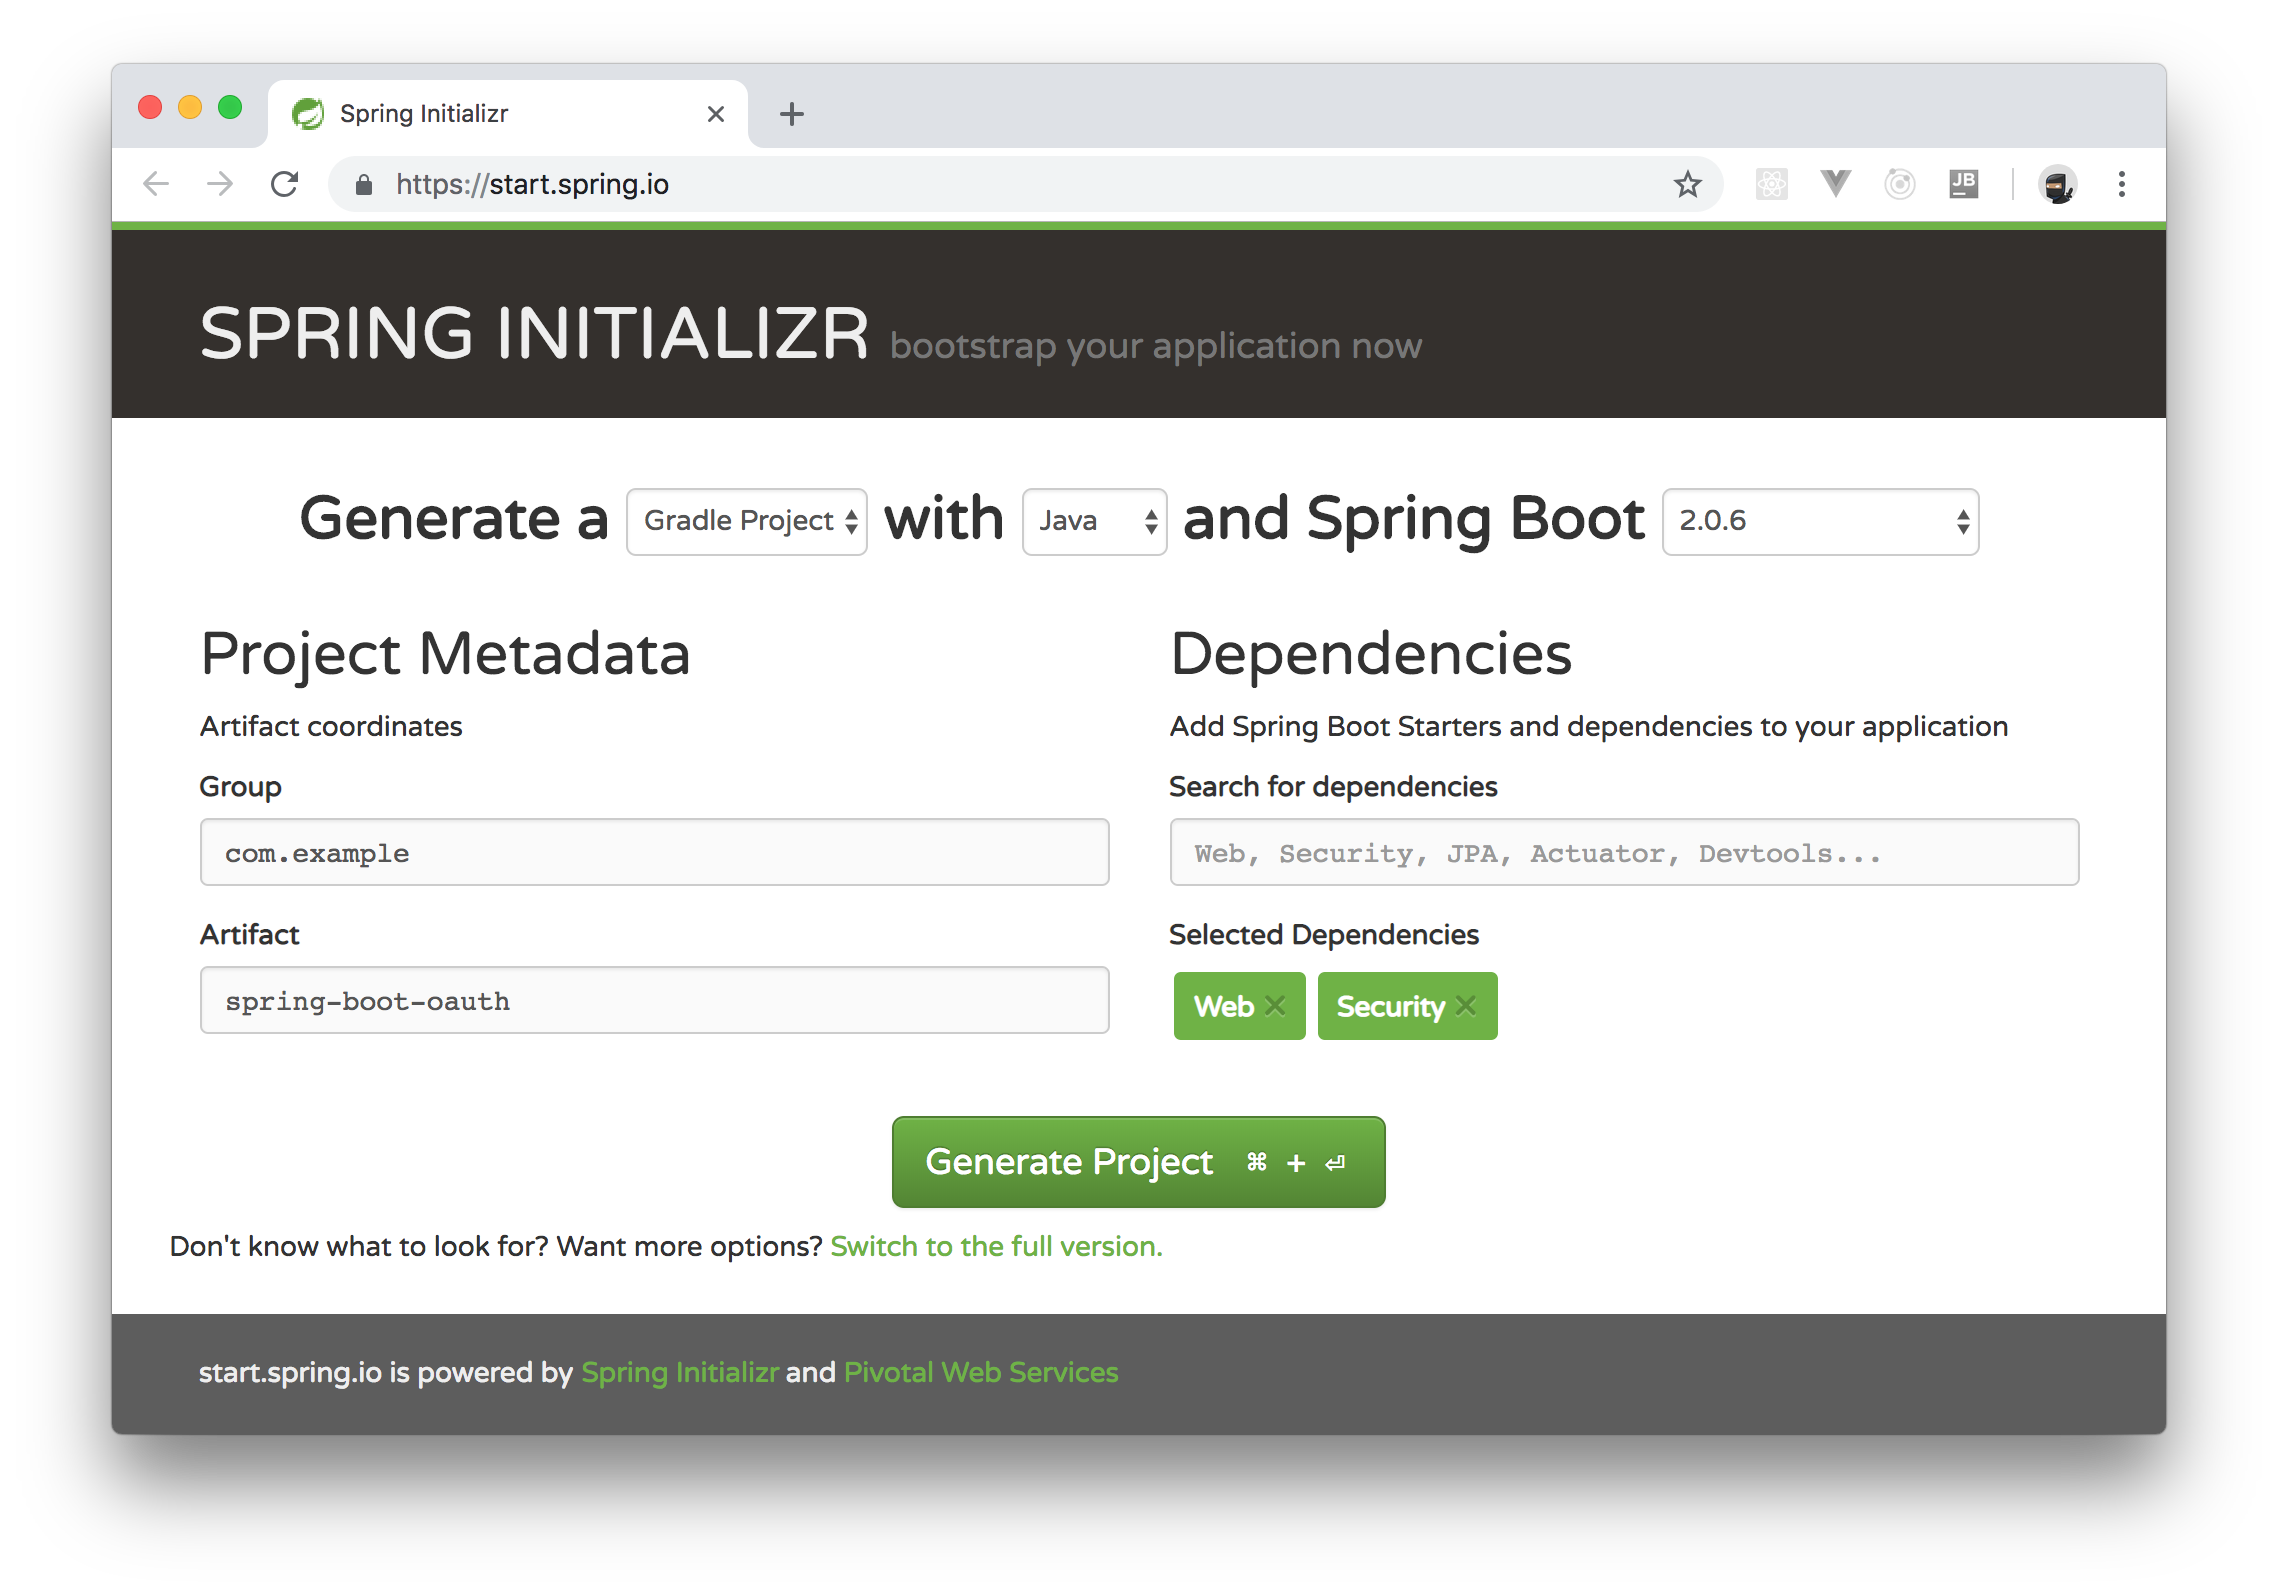 Generating a new Spring Boot project with Spring Initializr